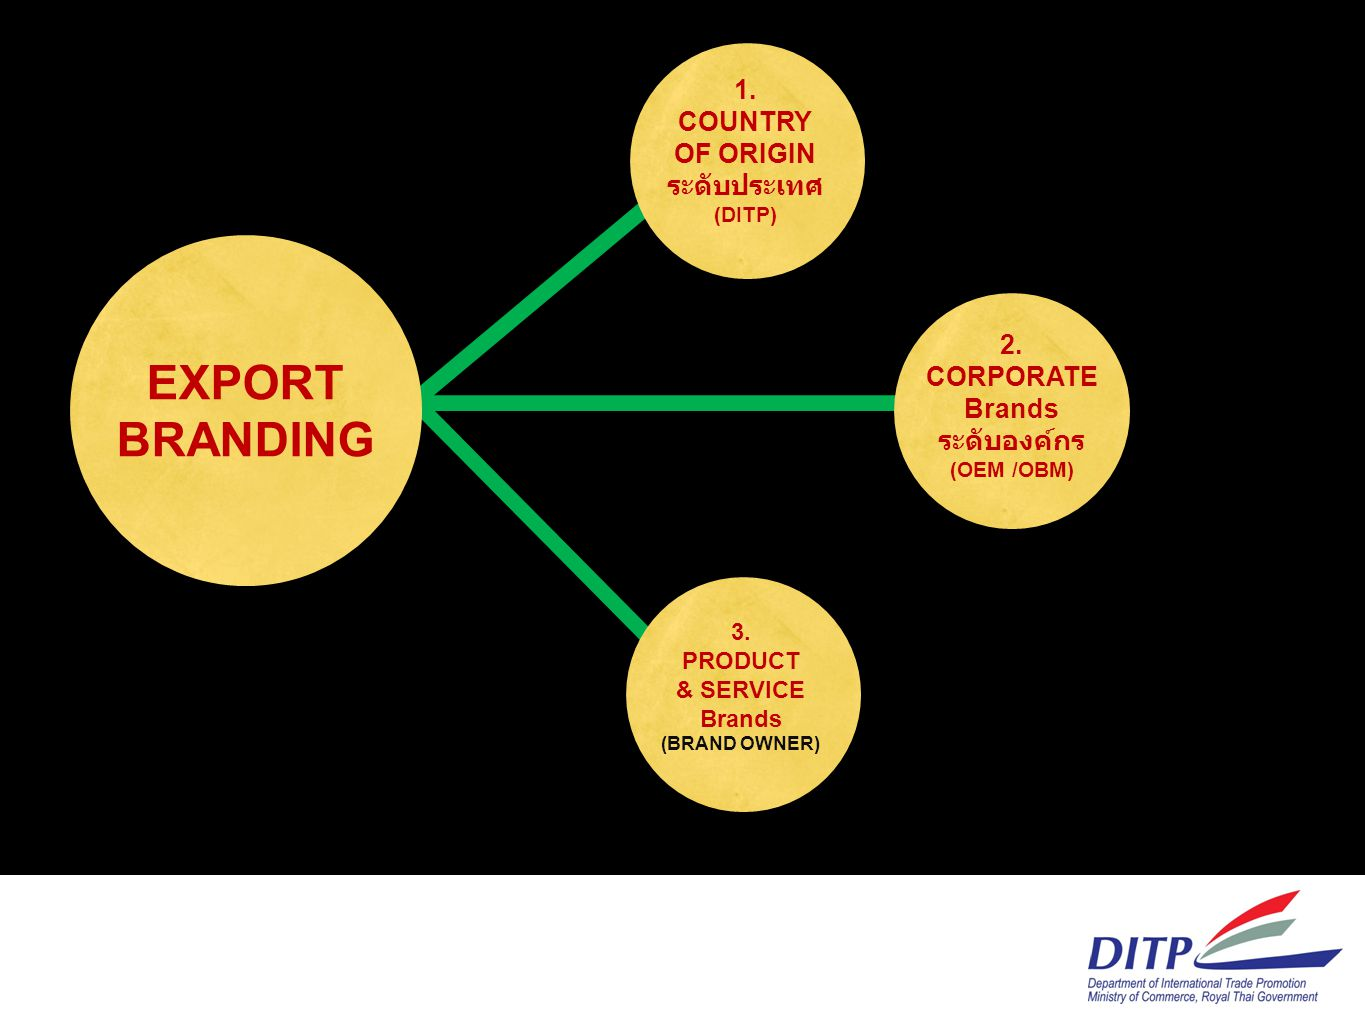 EXPORT BRANDING 1. COUNTRY OF ORIGIN ระดับประเทศ 2. CORPORATE Brands